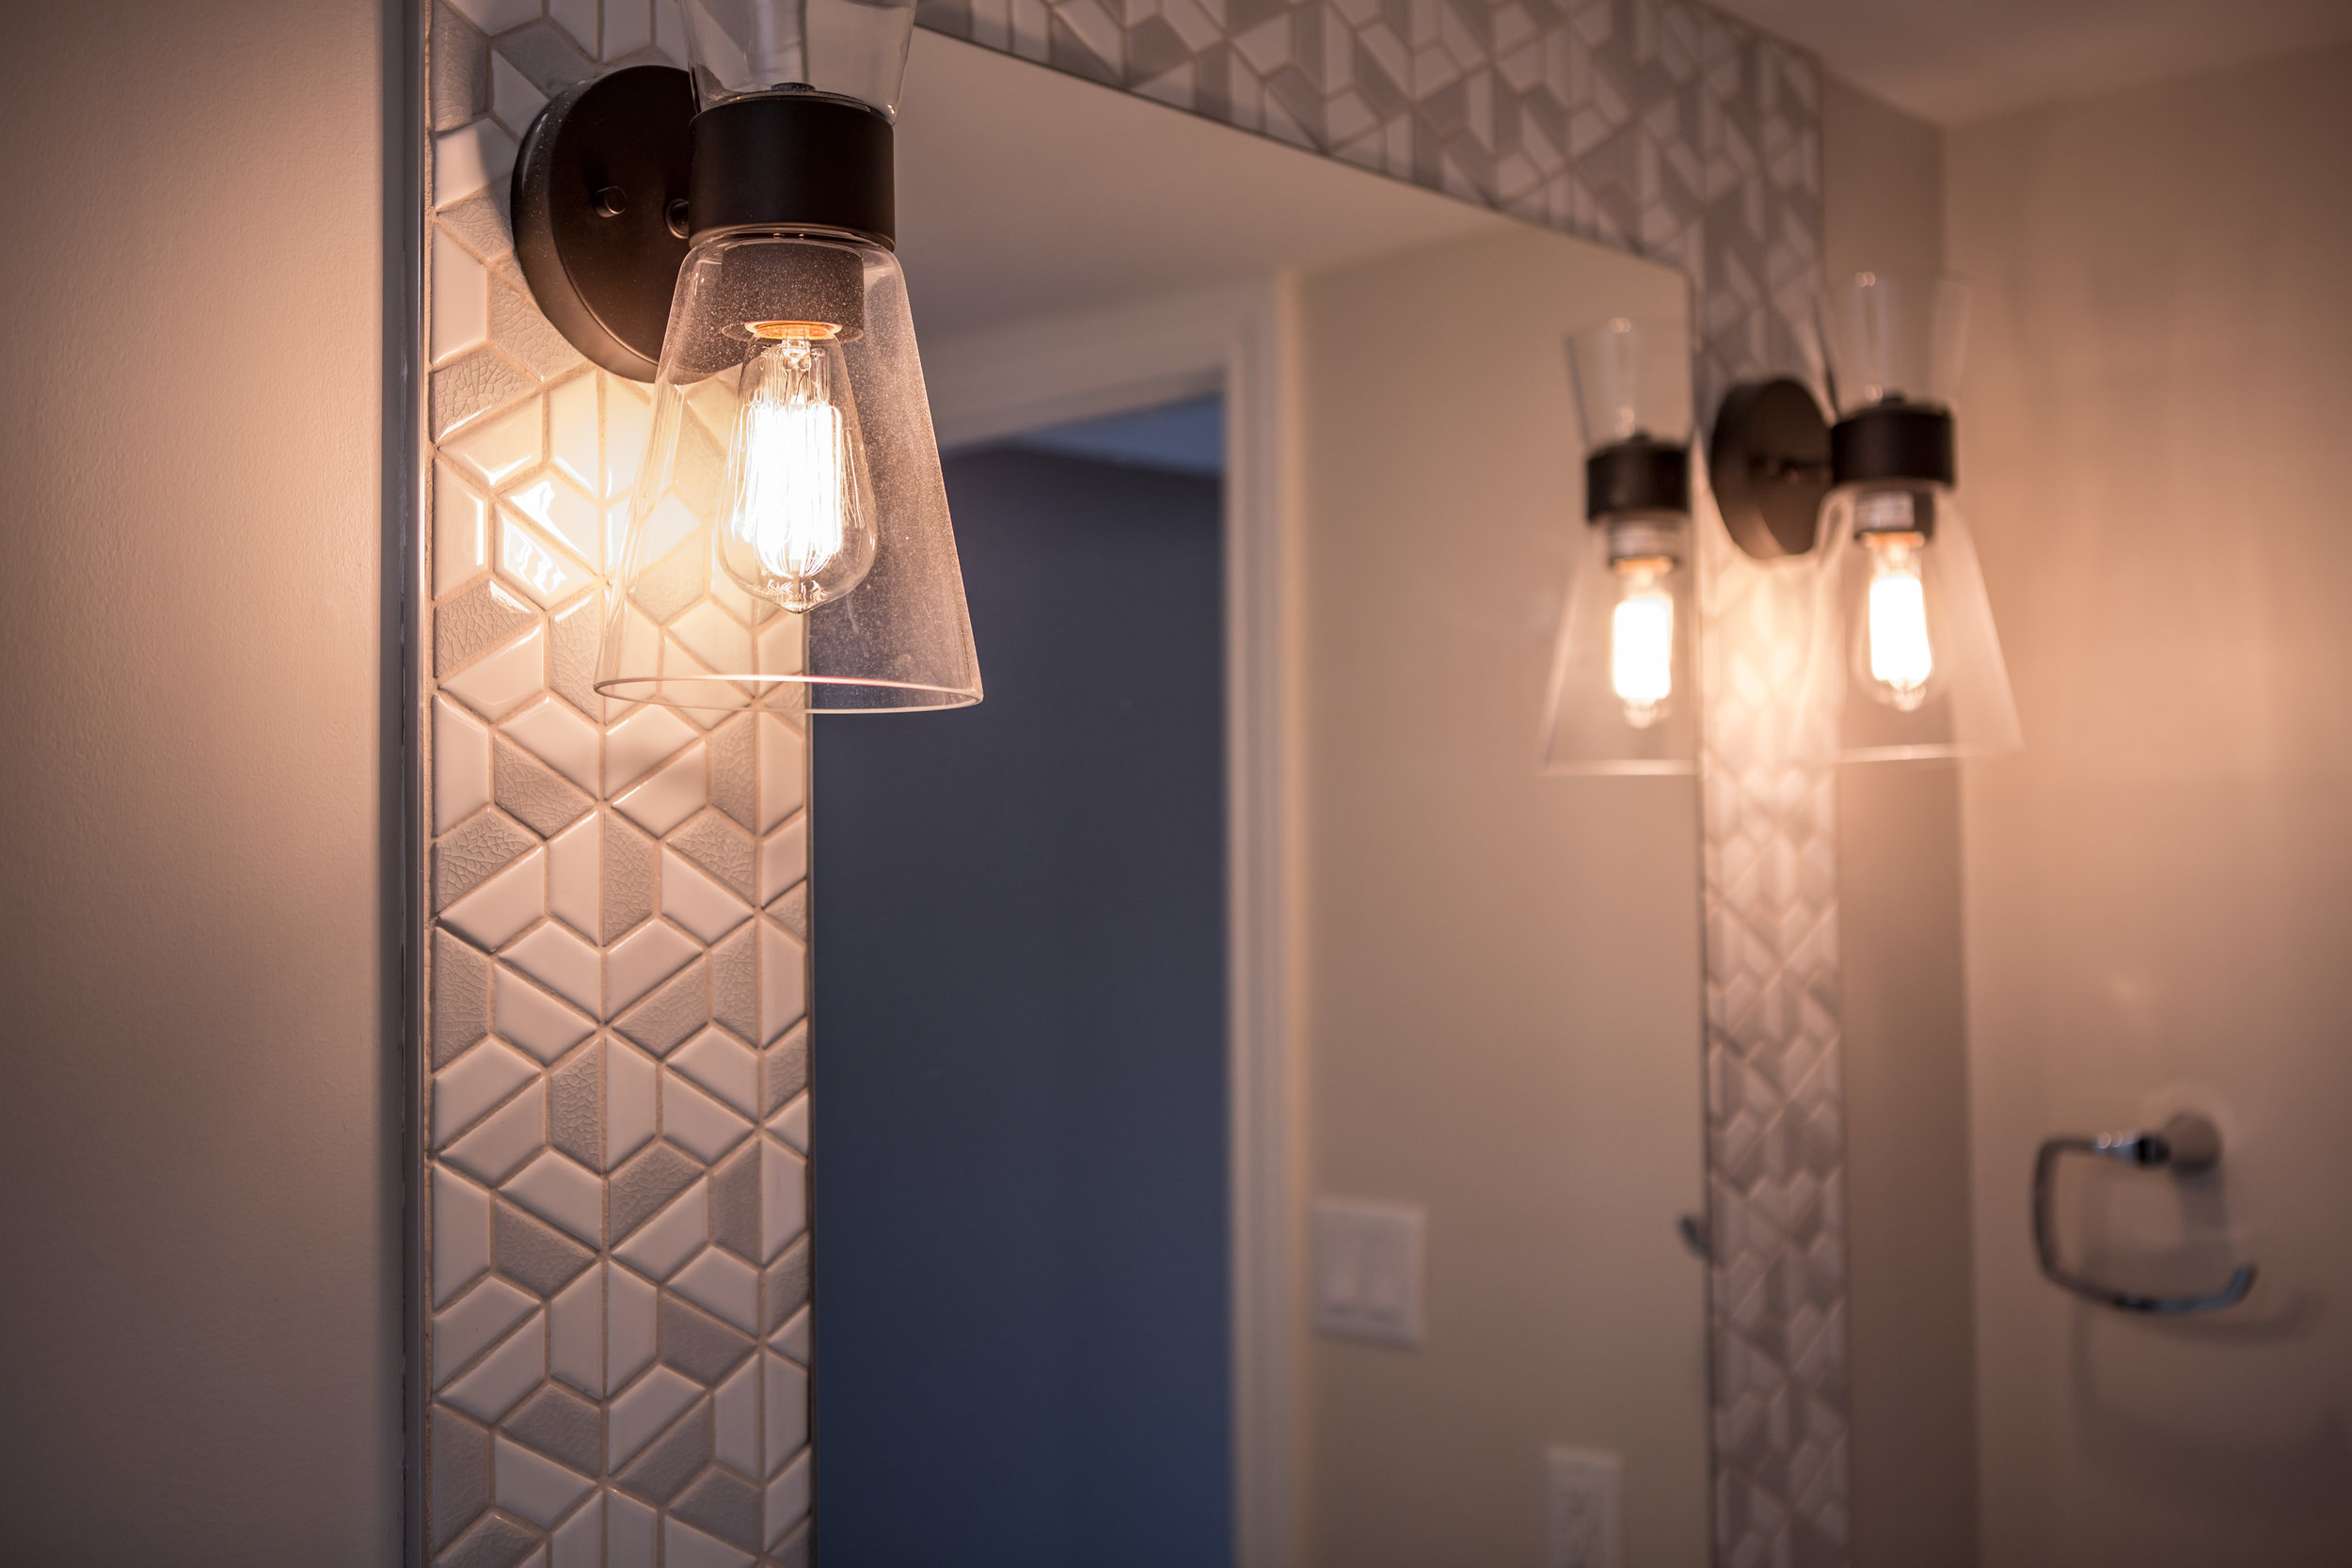 Sconces at eye-level. The tiles also create contrast.